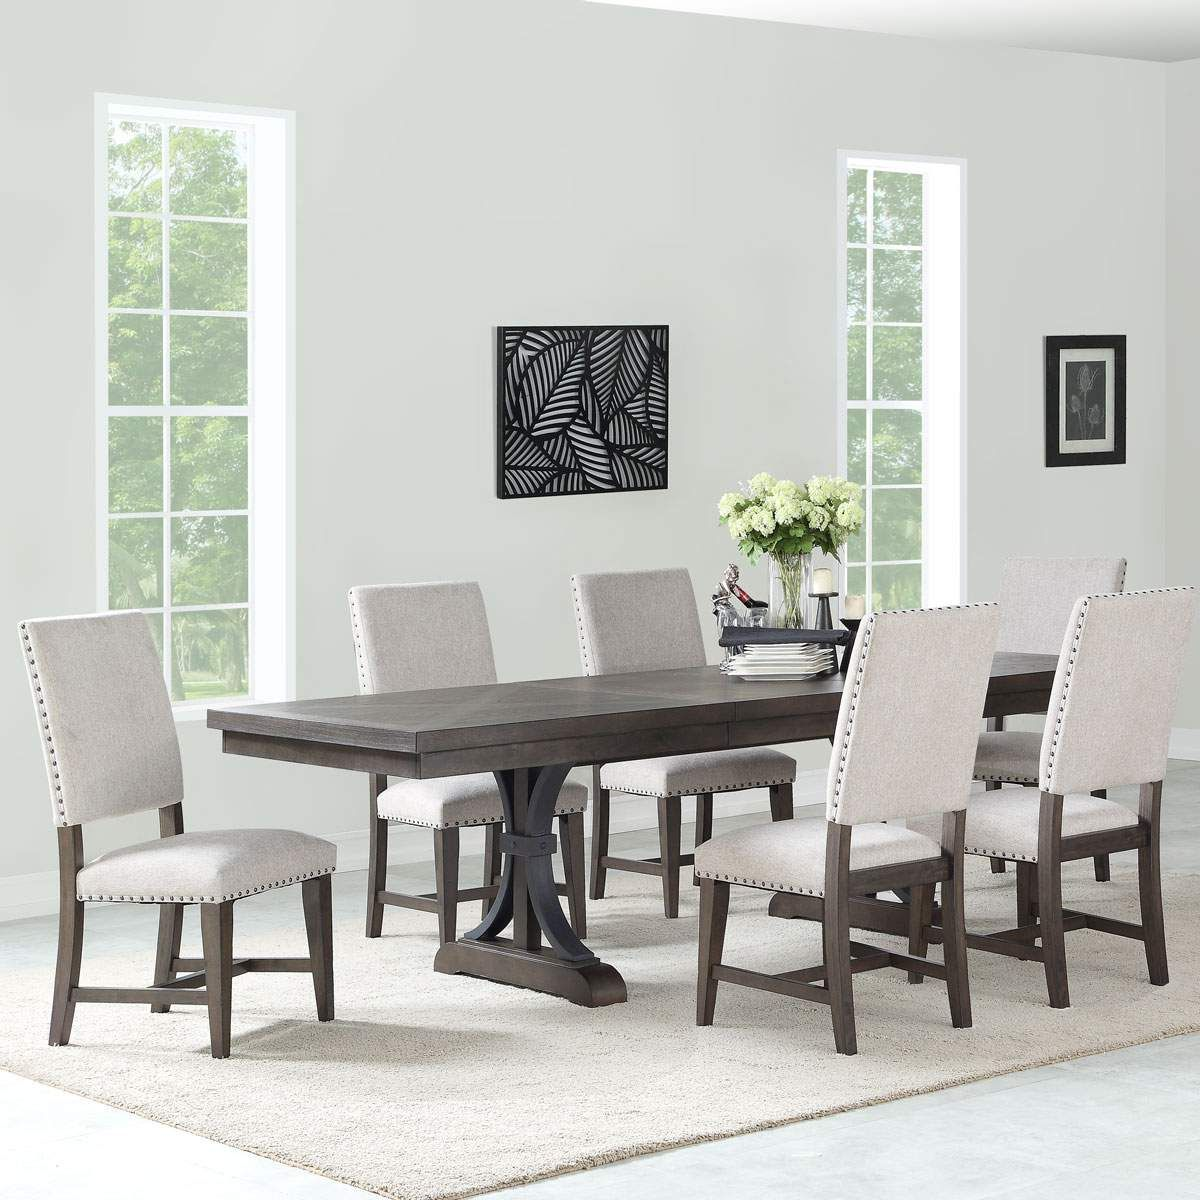 Torrey Dining Room Sets Furniture 7 Piece Dining Set